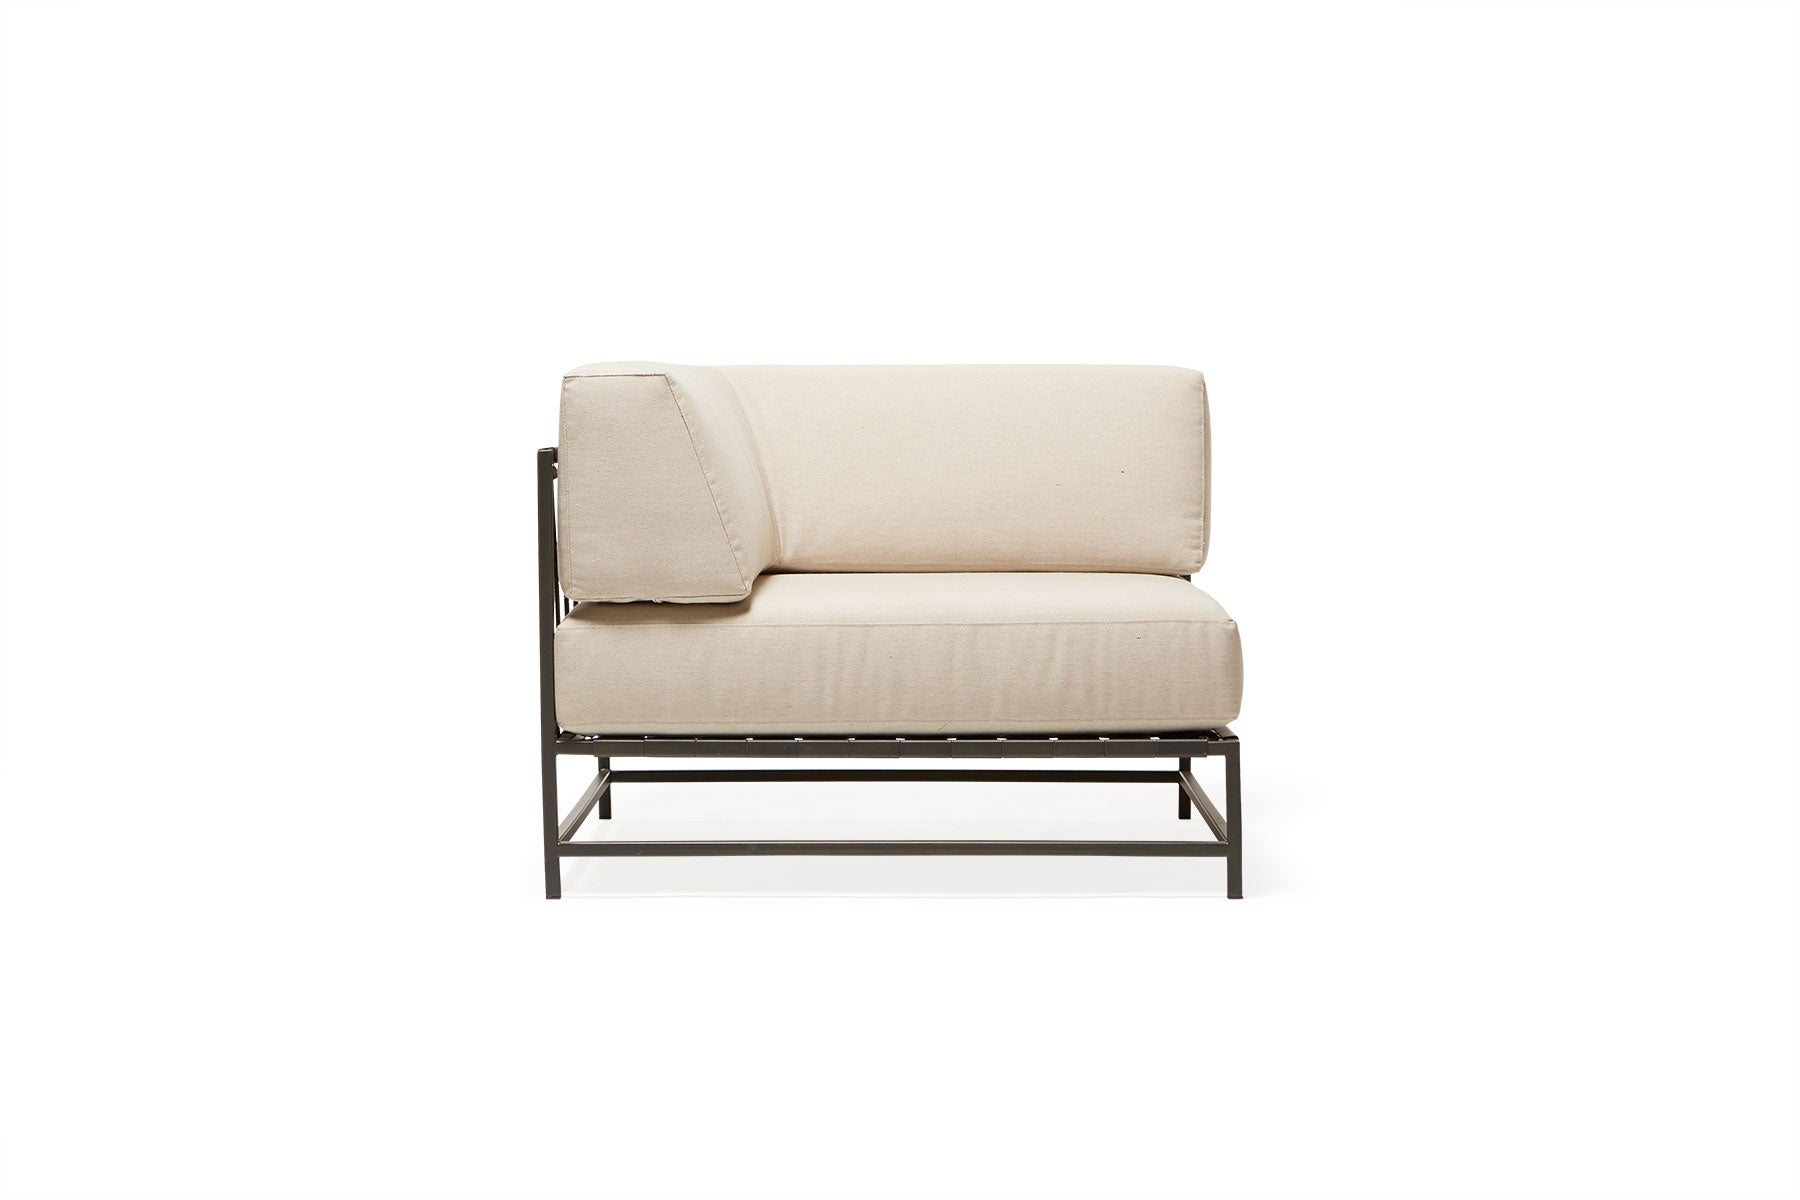 Outdoor Cream And Charcoal Corner Chair For Sale At 1stdibs